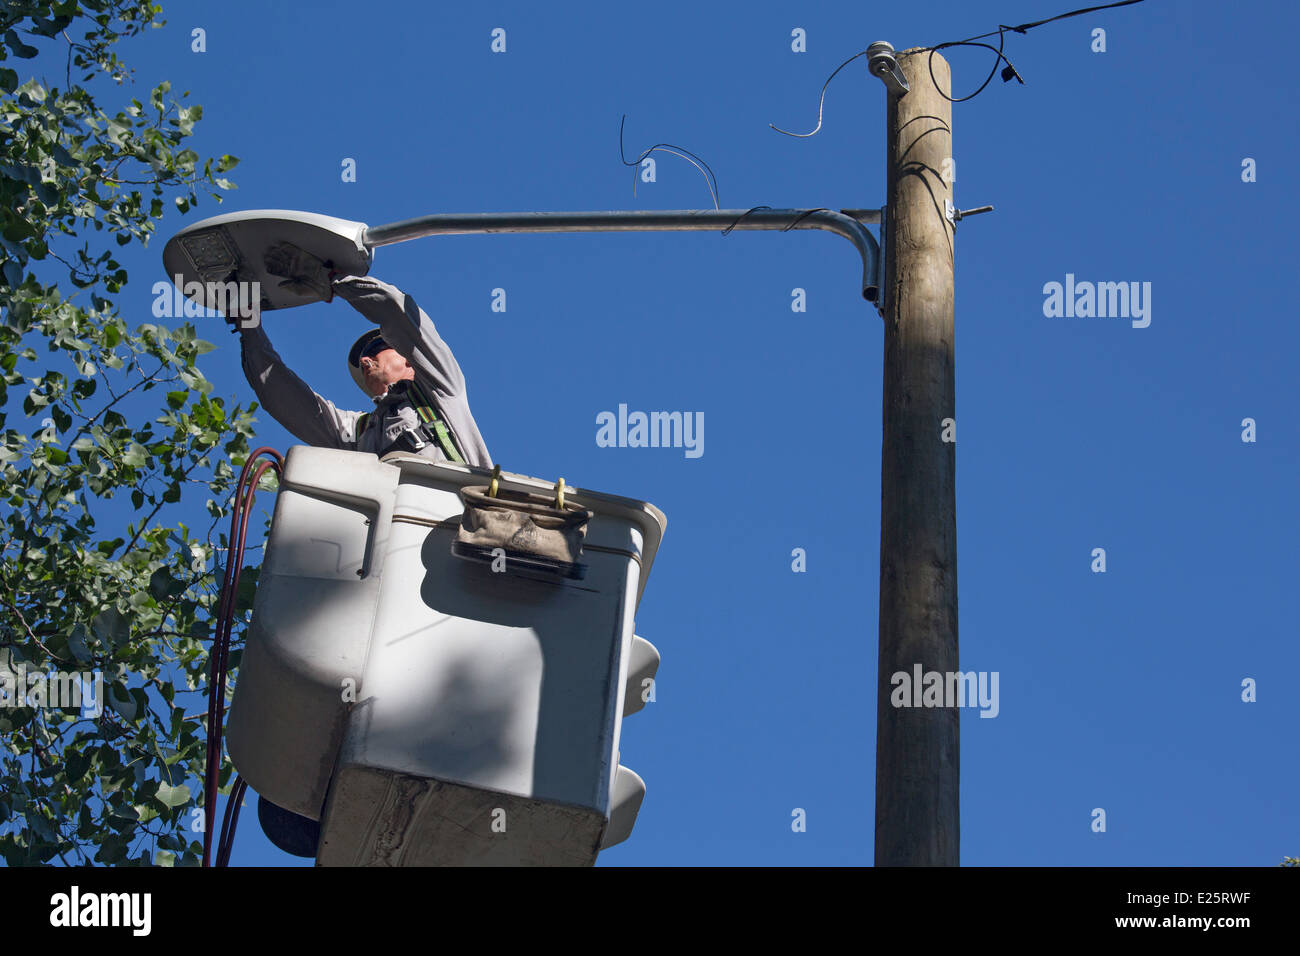 Workers install new streetlight in Detroit. - Stock Image